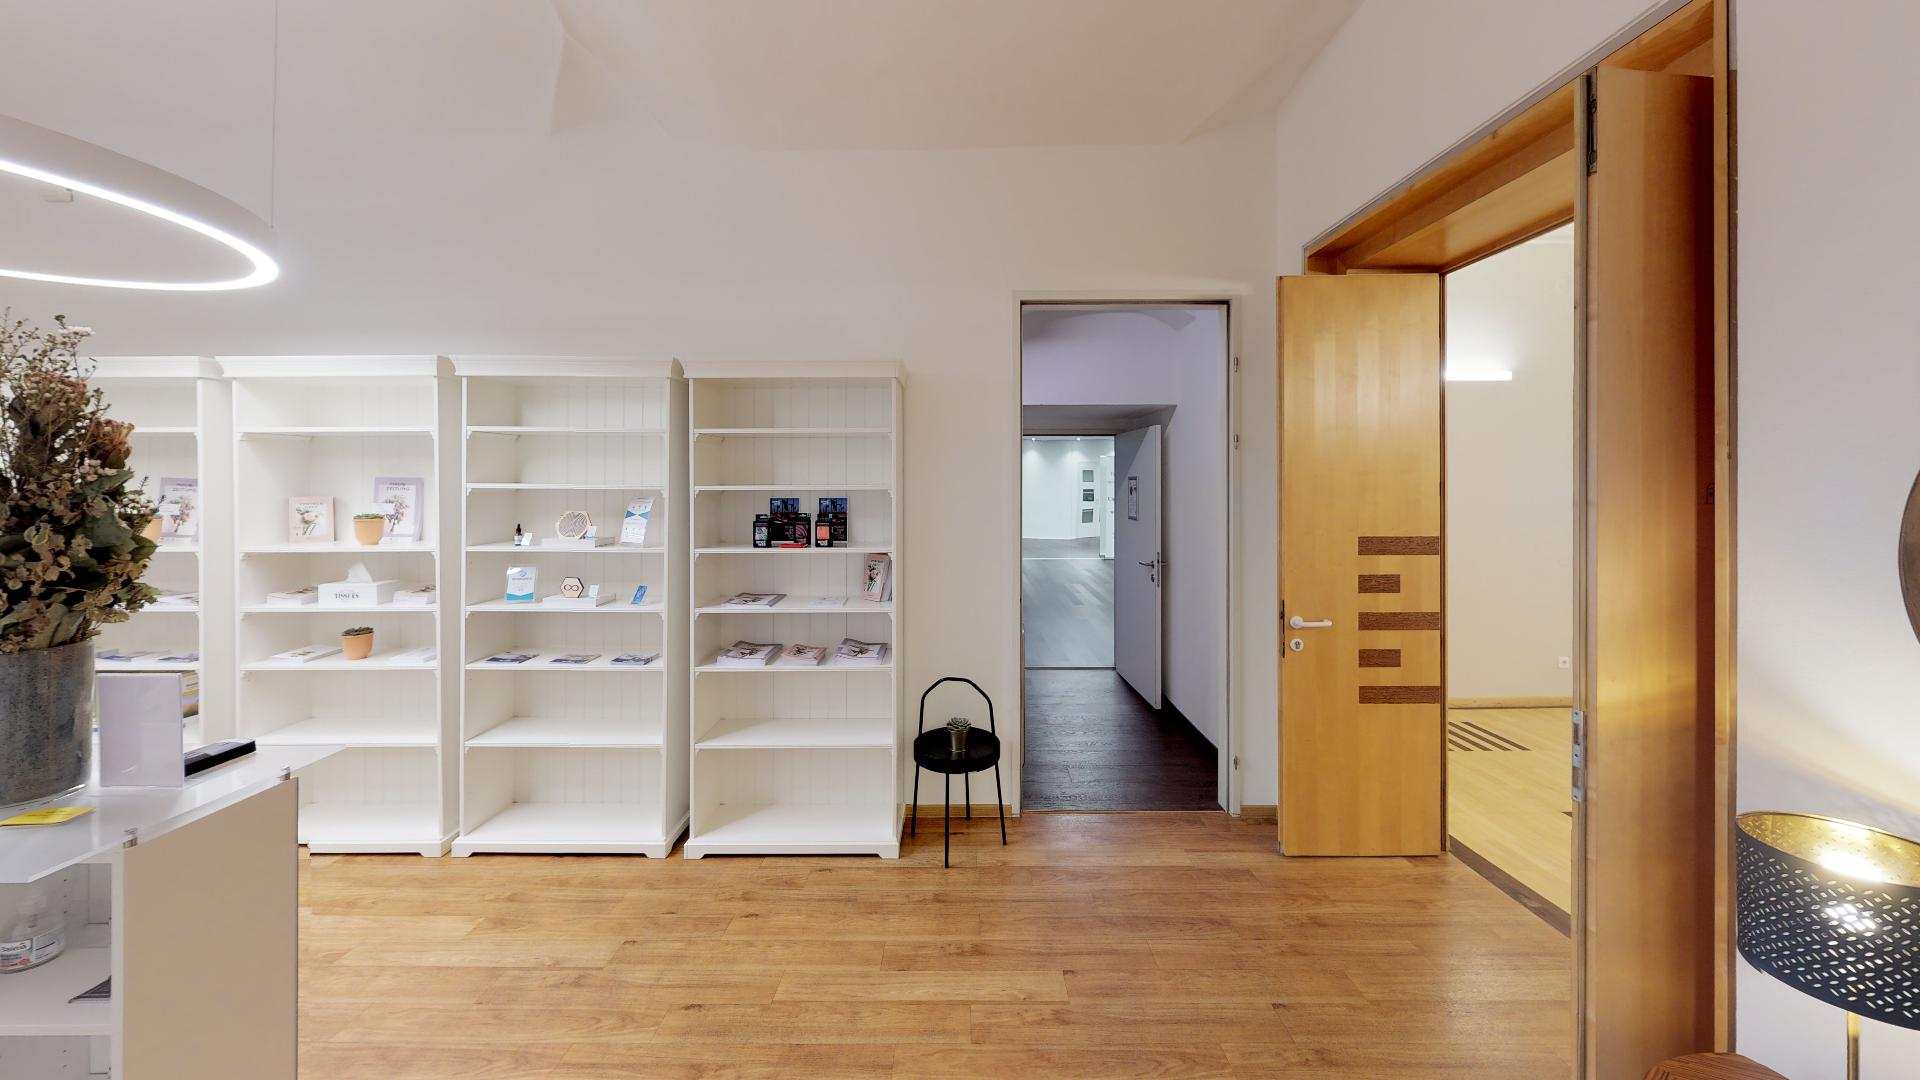 Home-Of-Health-Graz-Dining-Room